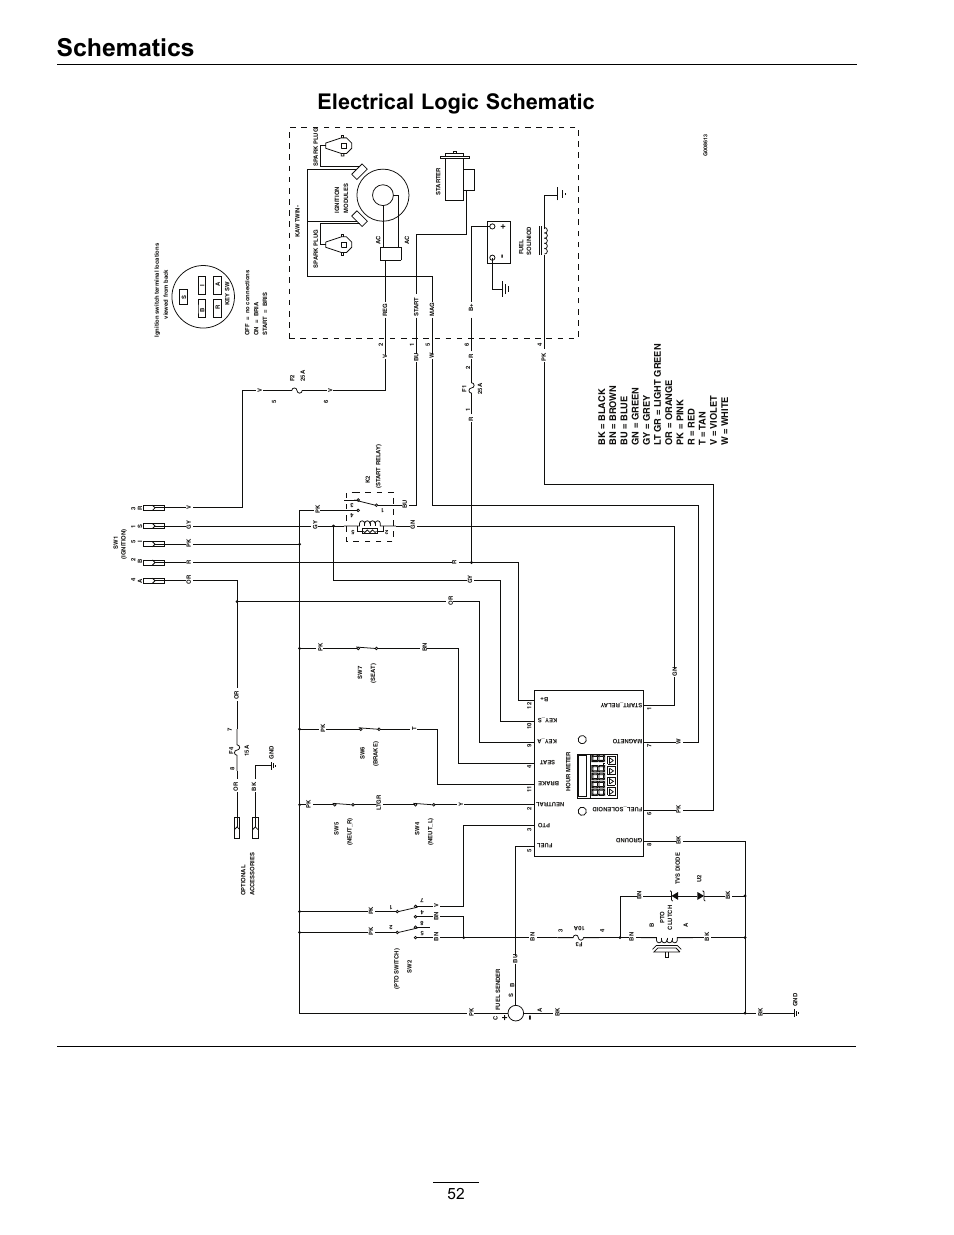 Schematics Electrical Logic Schematic Exmark Lazer Z Advantage Series Models 0 User Manual Page 52 60 Original Mode